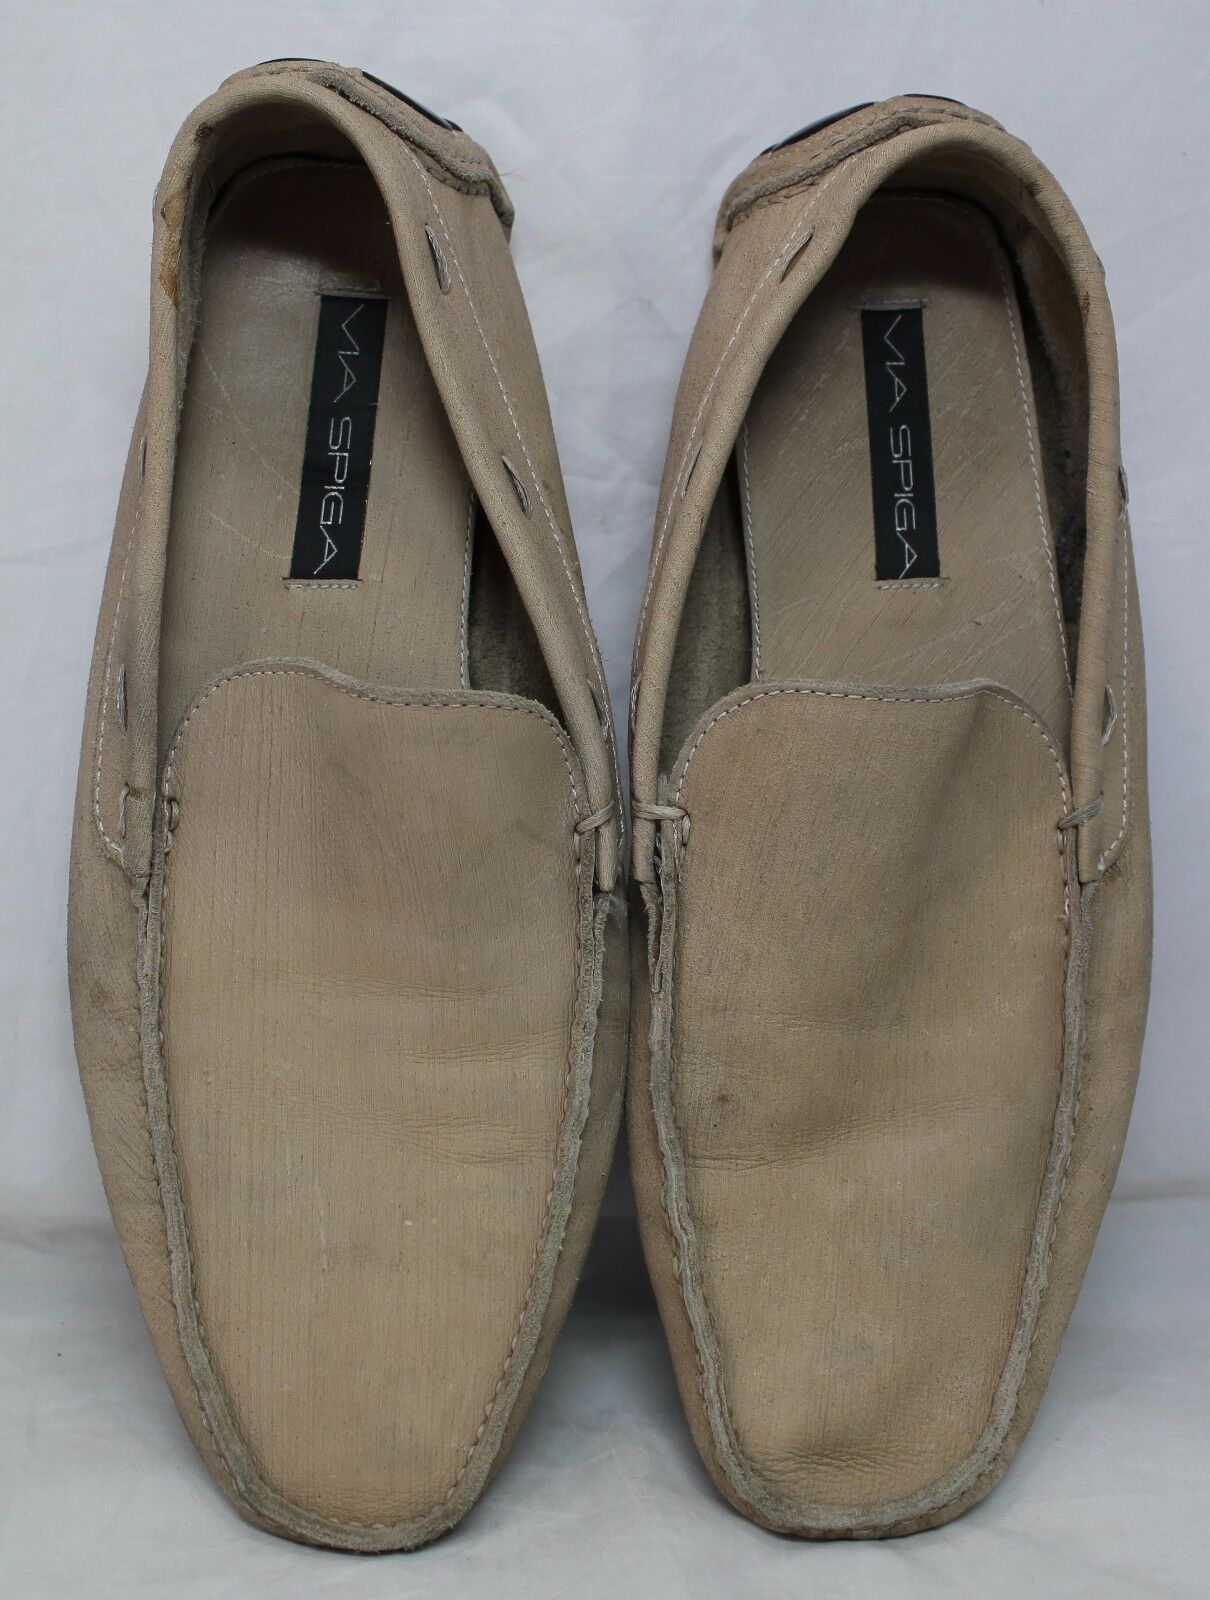 Via Spiga Uomo Tan Suede Pelle Loafers Size 13M - M Roadster